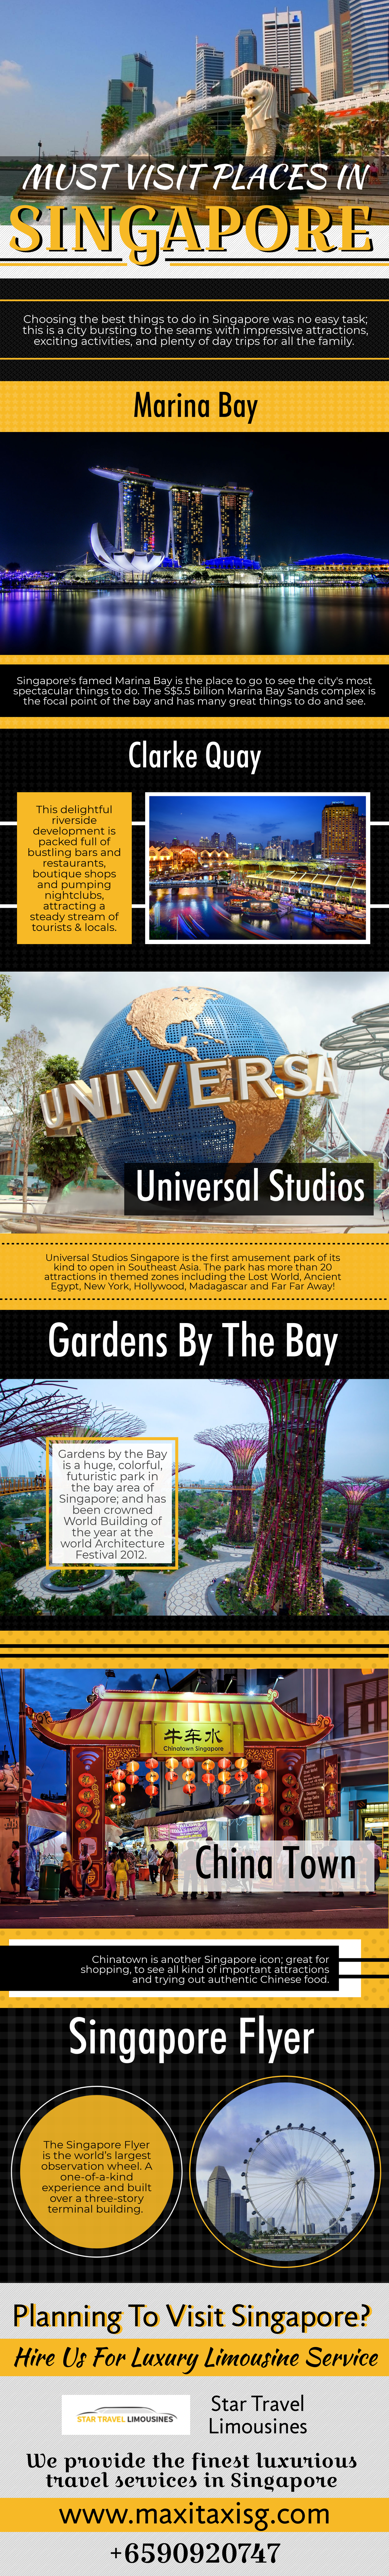 Best Locations to Visit in Singapore